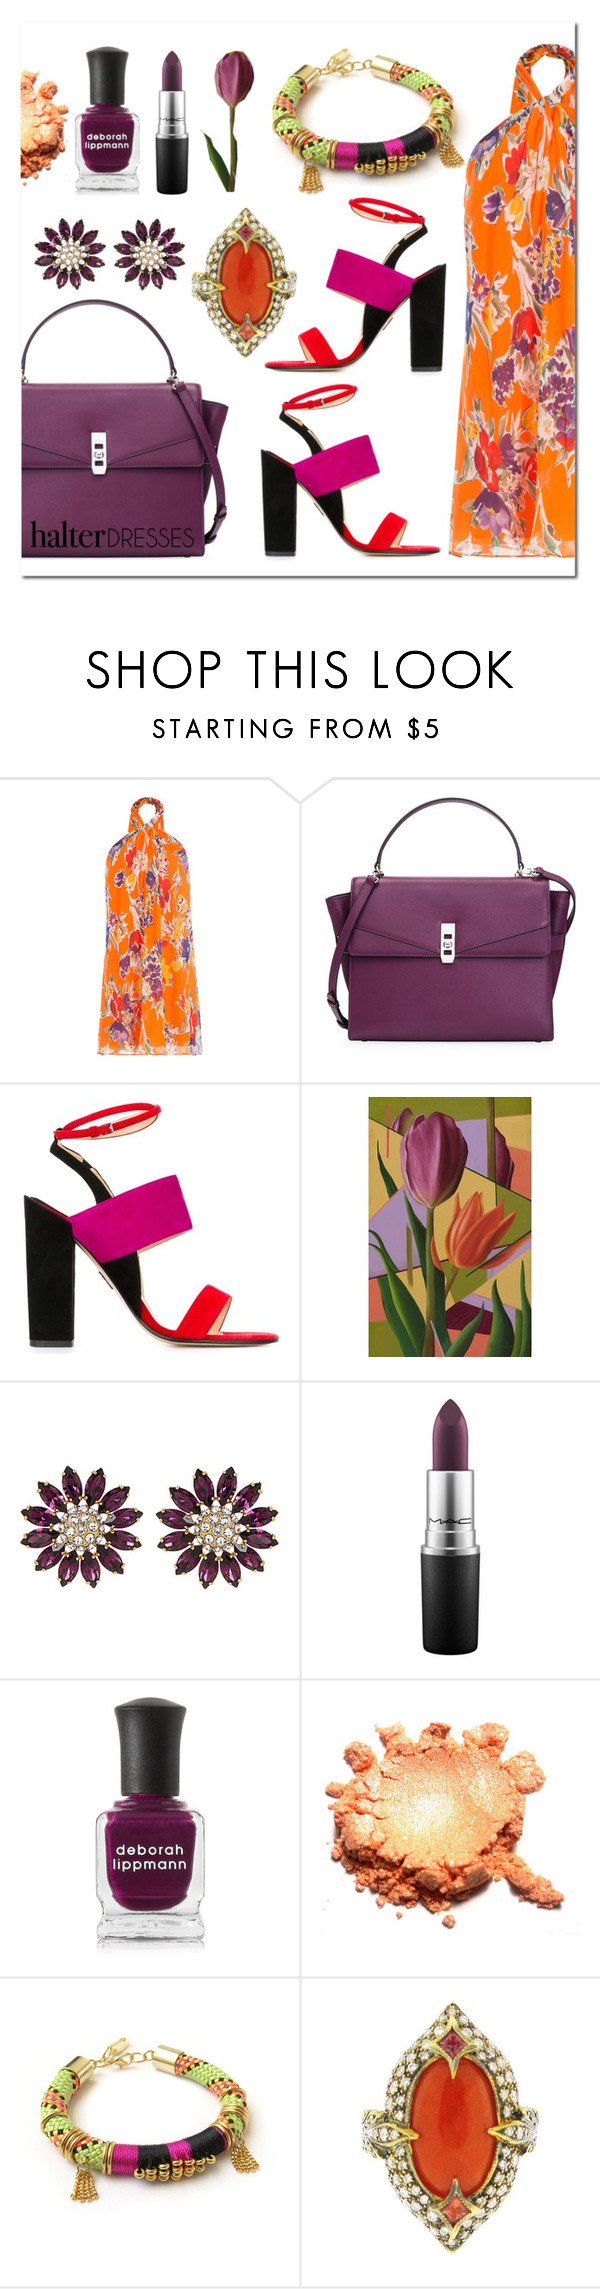 """Colourful"" by deaniefrank ❤ liked on Polyvore featuring Polo Ralph Lauren, Henri Bendel, Paul Andrew, NOVICA, Miu Miu, MAC Cosmetics, Deborah Lippmann, Celine H2o, Cathy Waterman and halterdresses"